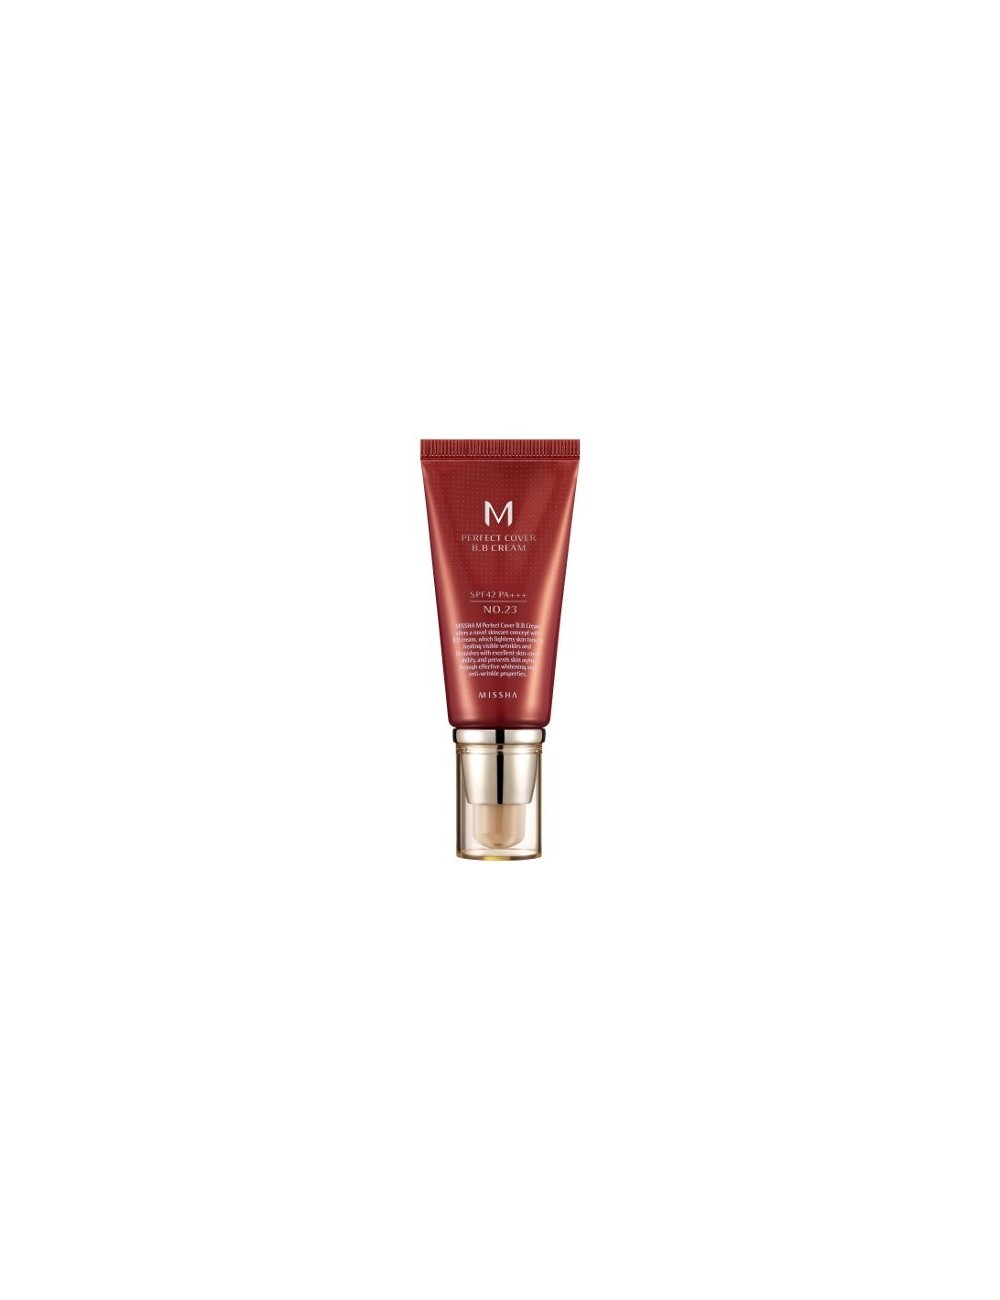 M Perfect Cover BB Cream nº 23 SPF 42 PA +++   50ml